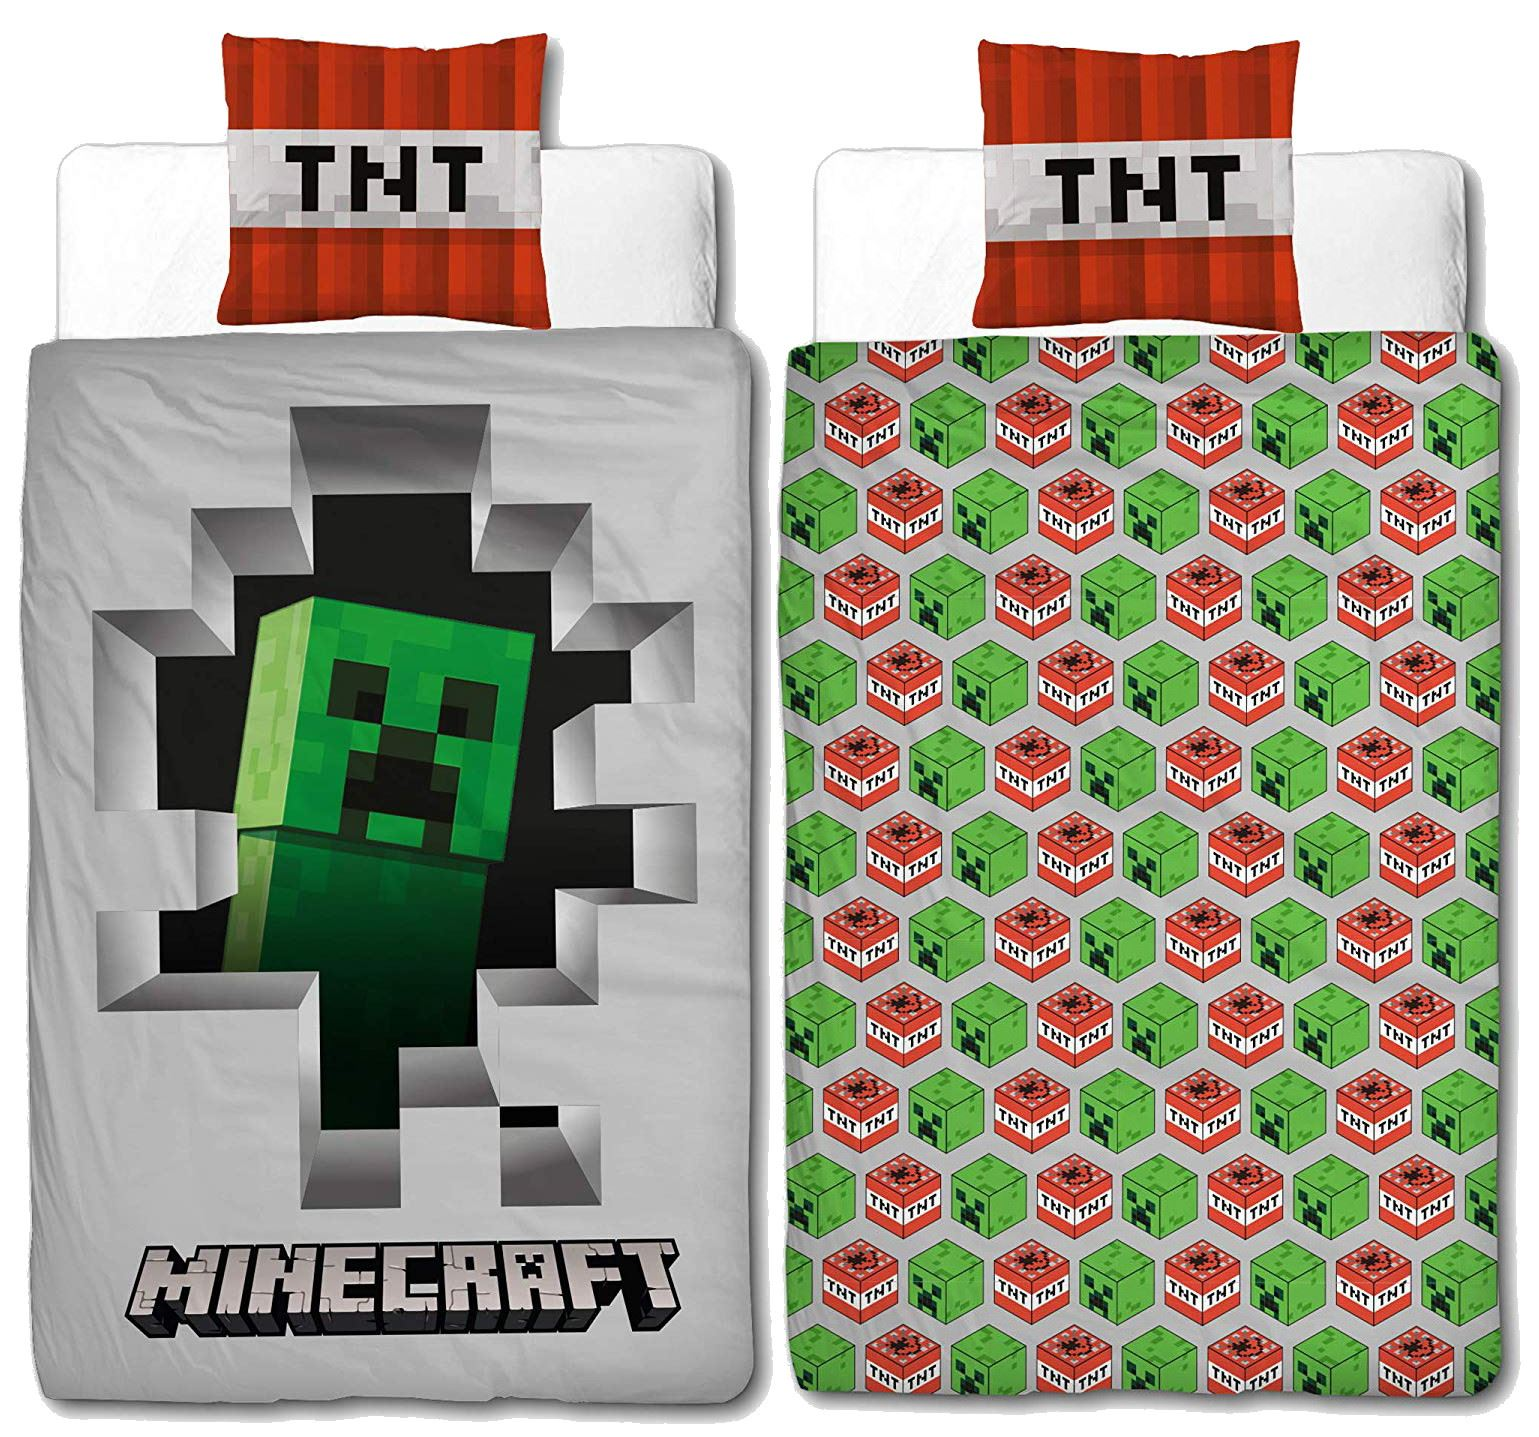 Official-Minecraft-Licensed-Duvet-Covers-Single-Double-Creeper-TNT-Bedding thumbnail 14